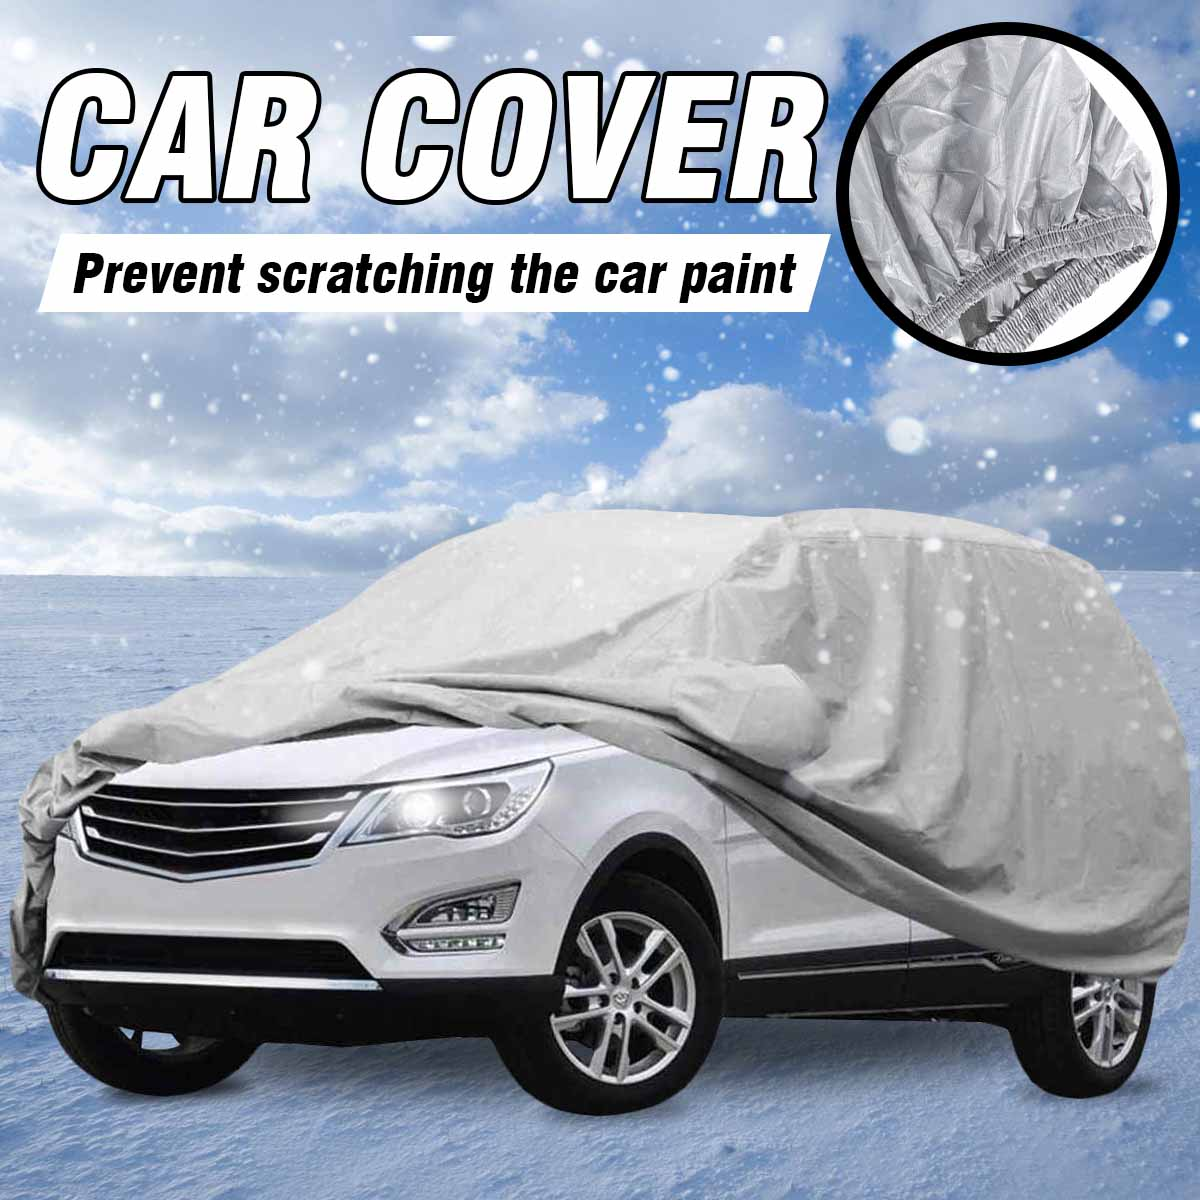 Universal Car Cover L XL Size Heavy Duty Anti UV Waterproof Rain Resistant Anti Scratch Dustproof Durable SUV Full Car Cover